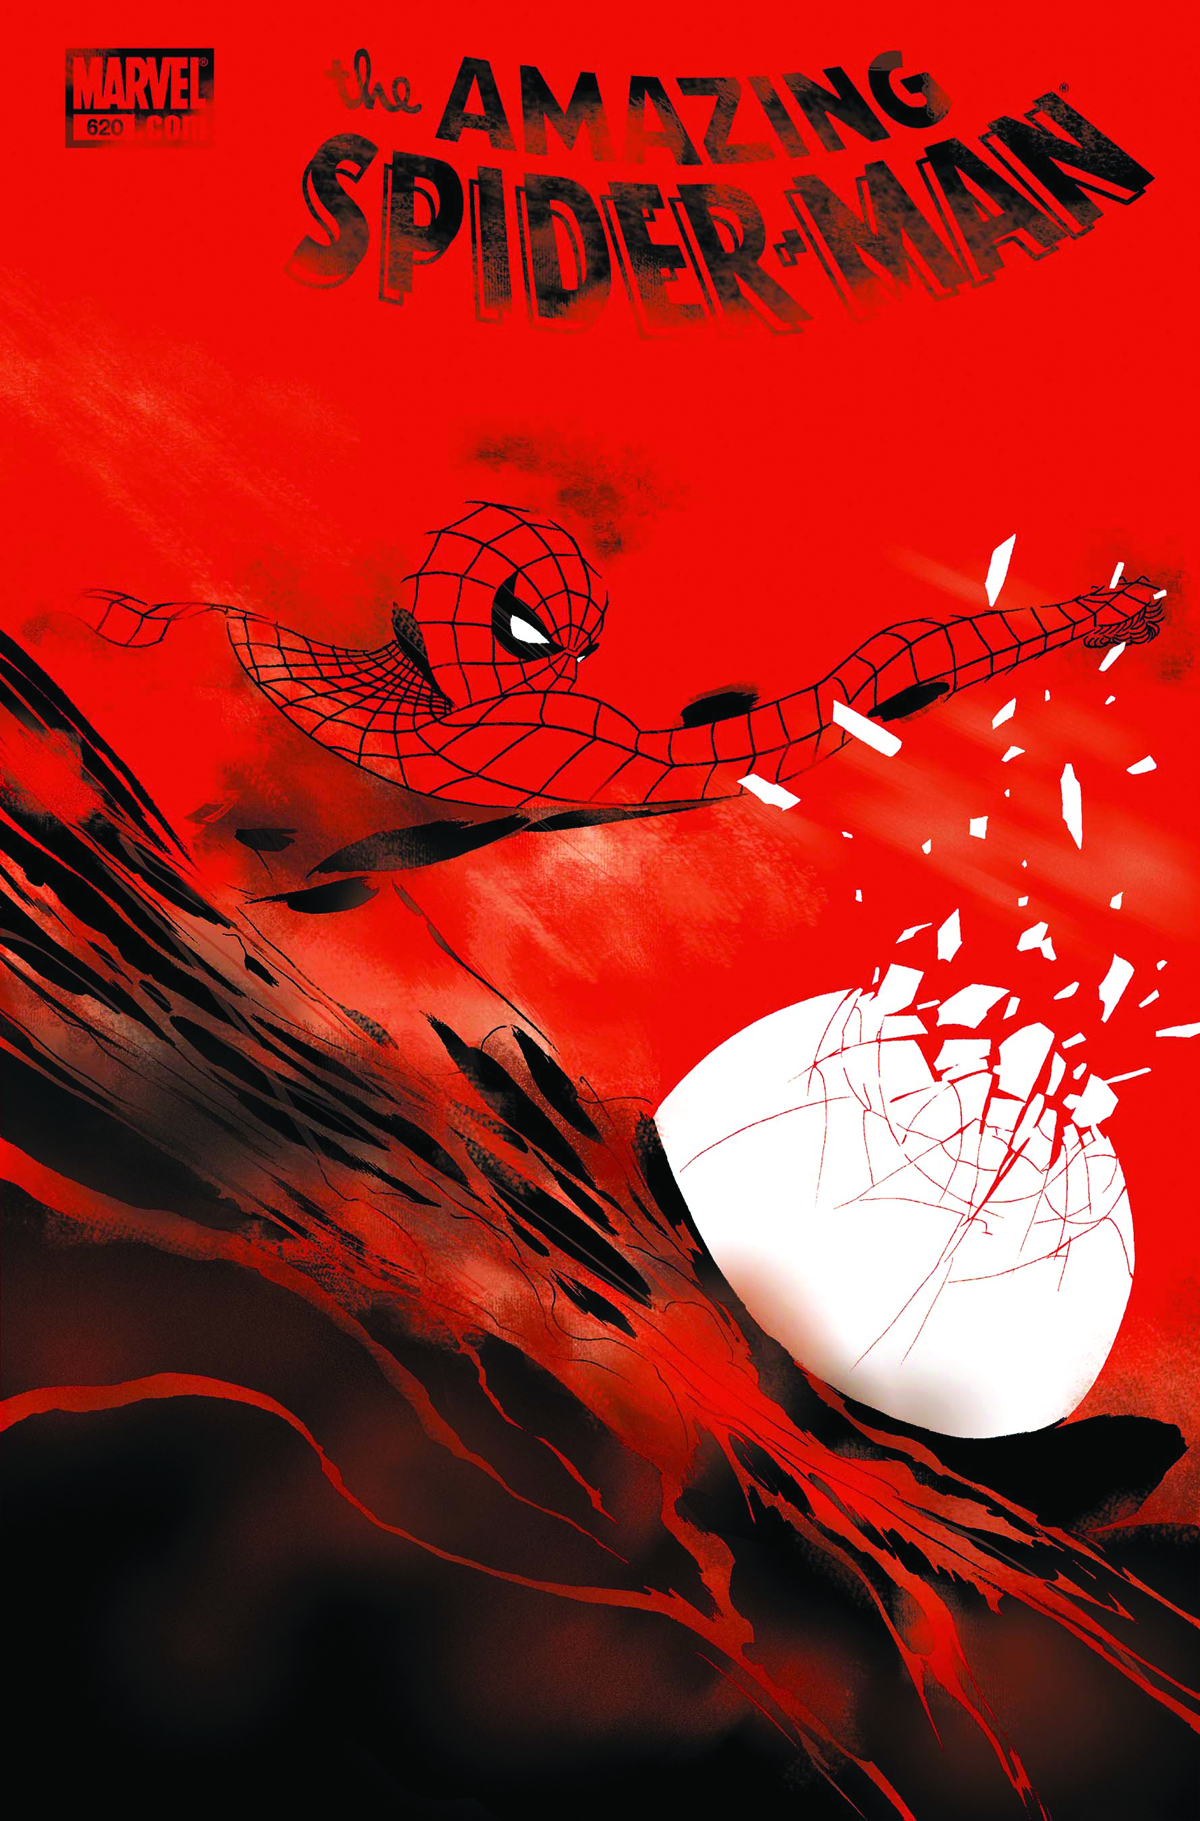 AMAZING SPIDER-MAN #620 GNTLT